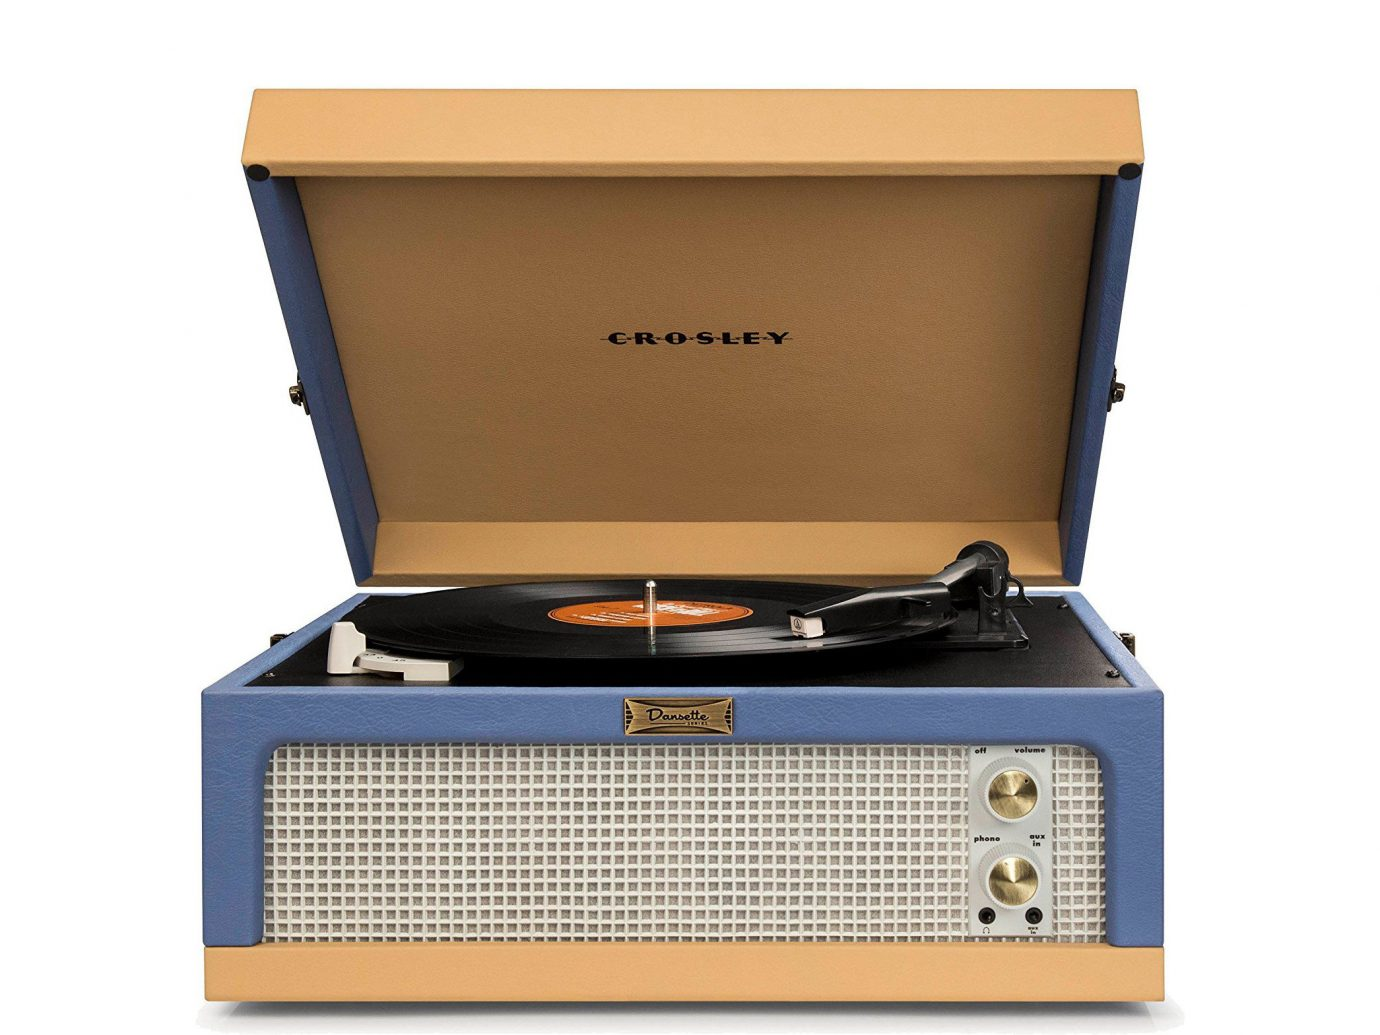 Gift Guides Travel Shop record player electronic instrument product electronics sound box audio equipment